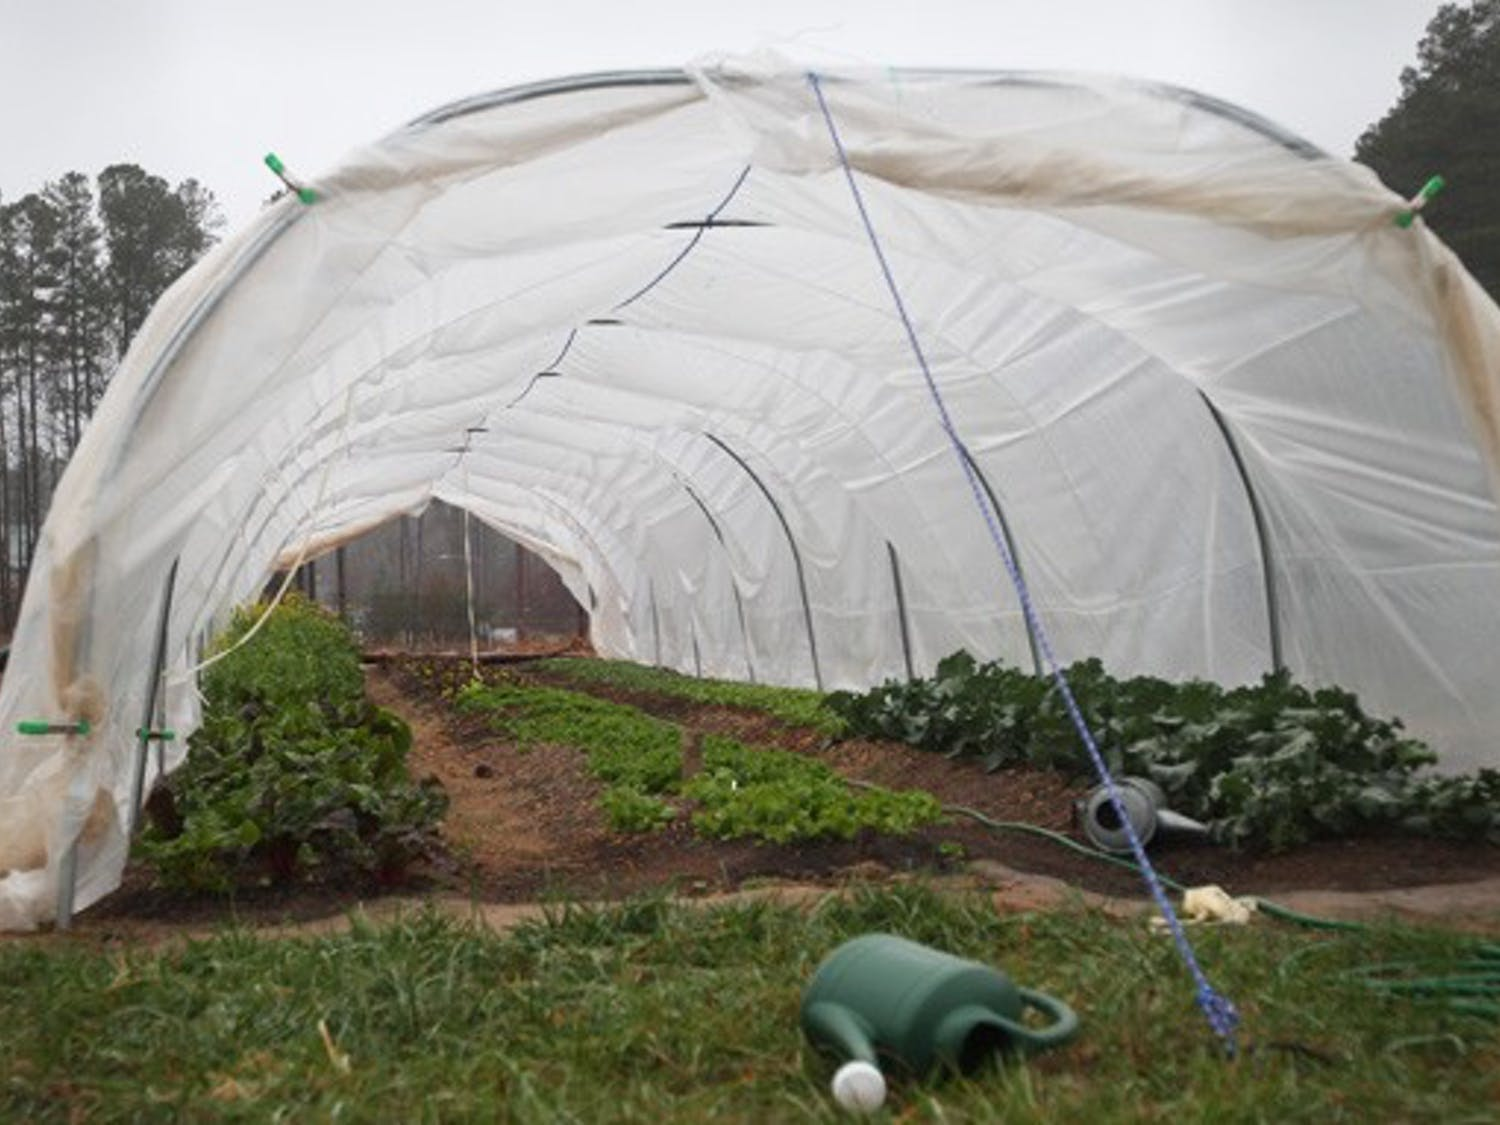 The Duke Campus Farm, which just celebrated its first full year of operation, has generated approximately 5,000 pounds of produce.